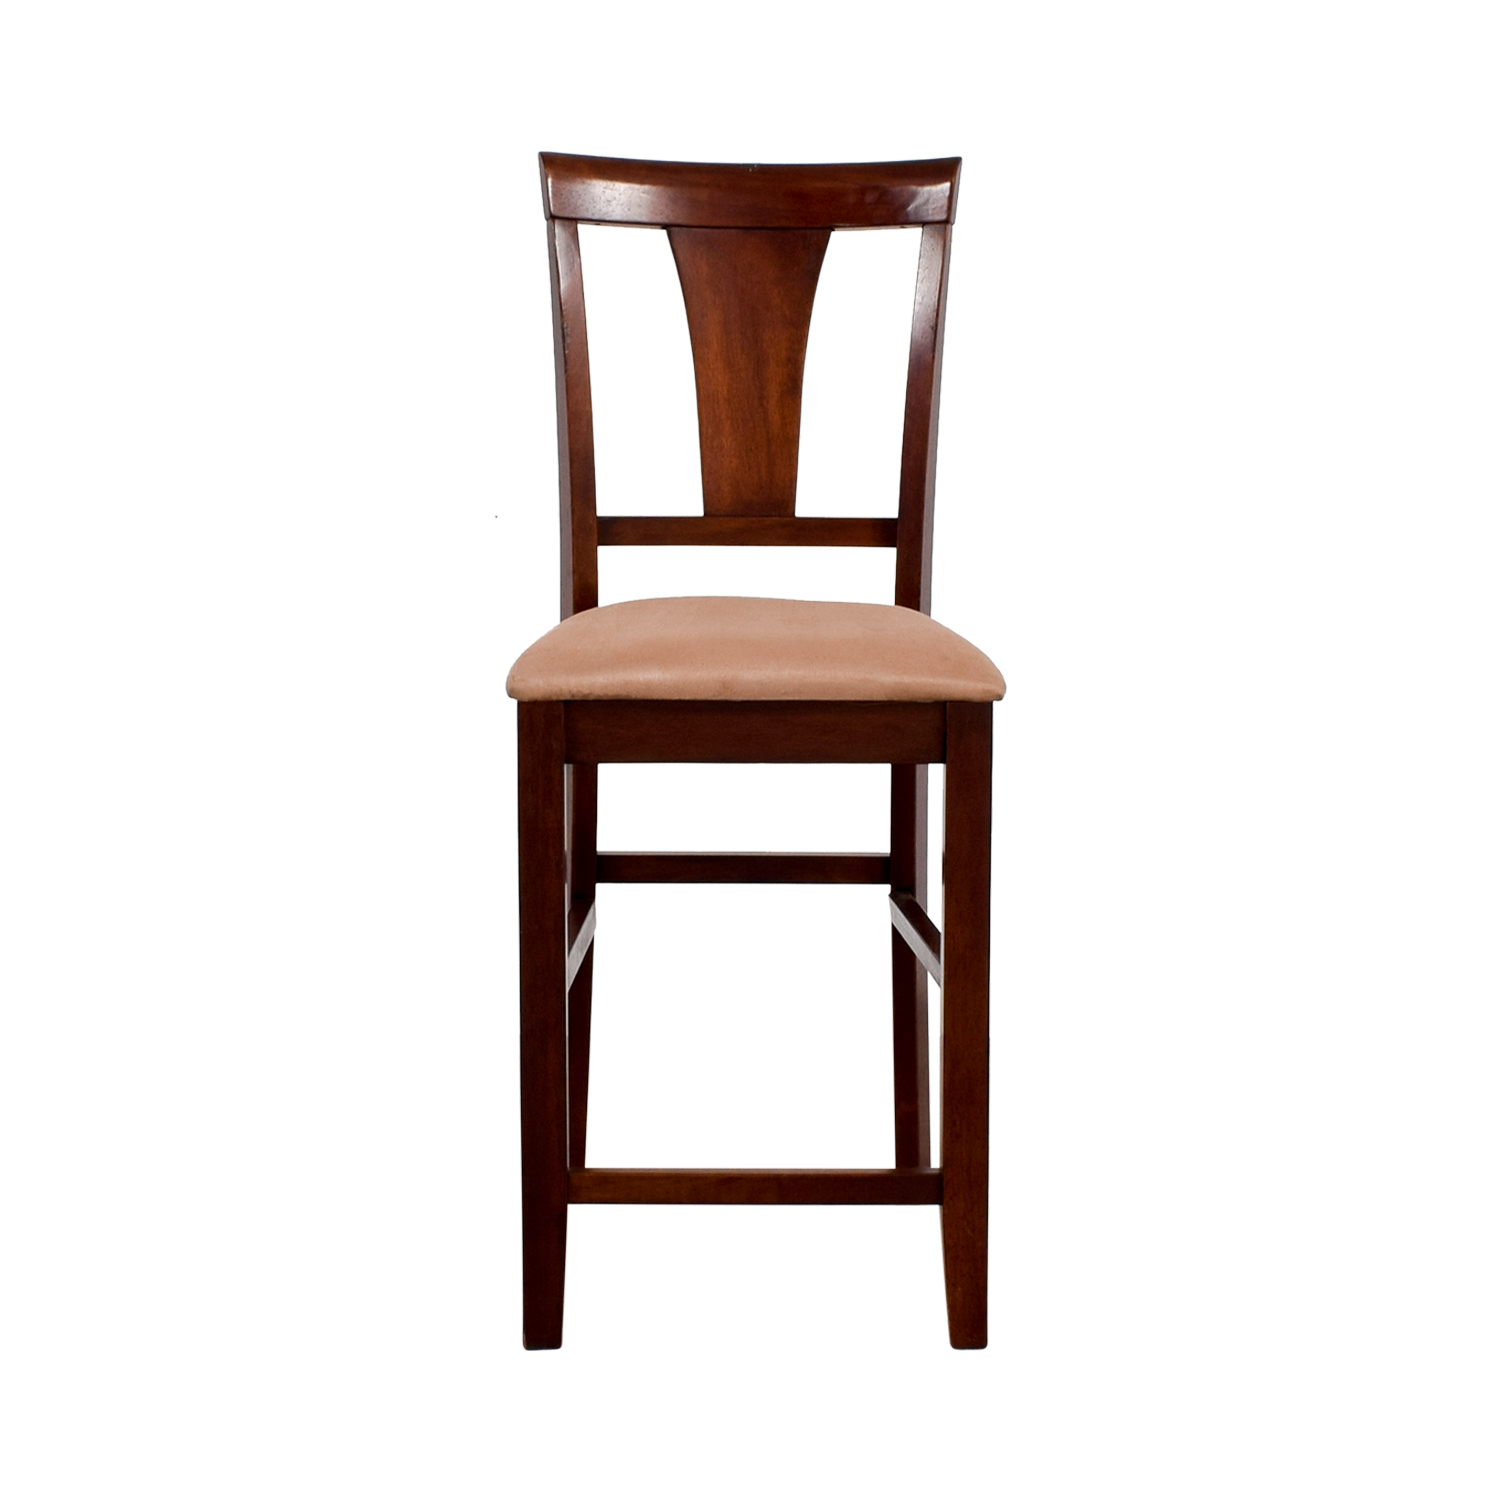 Light Cherry Wood Counter Height Chair with Padded Seat nj